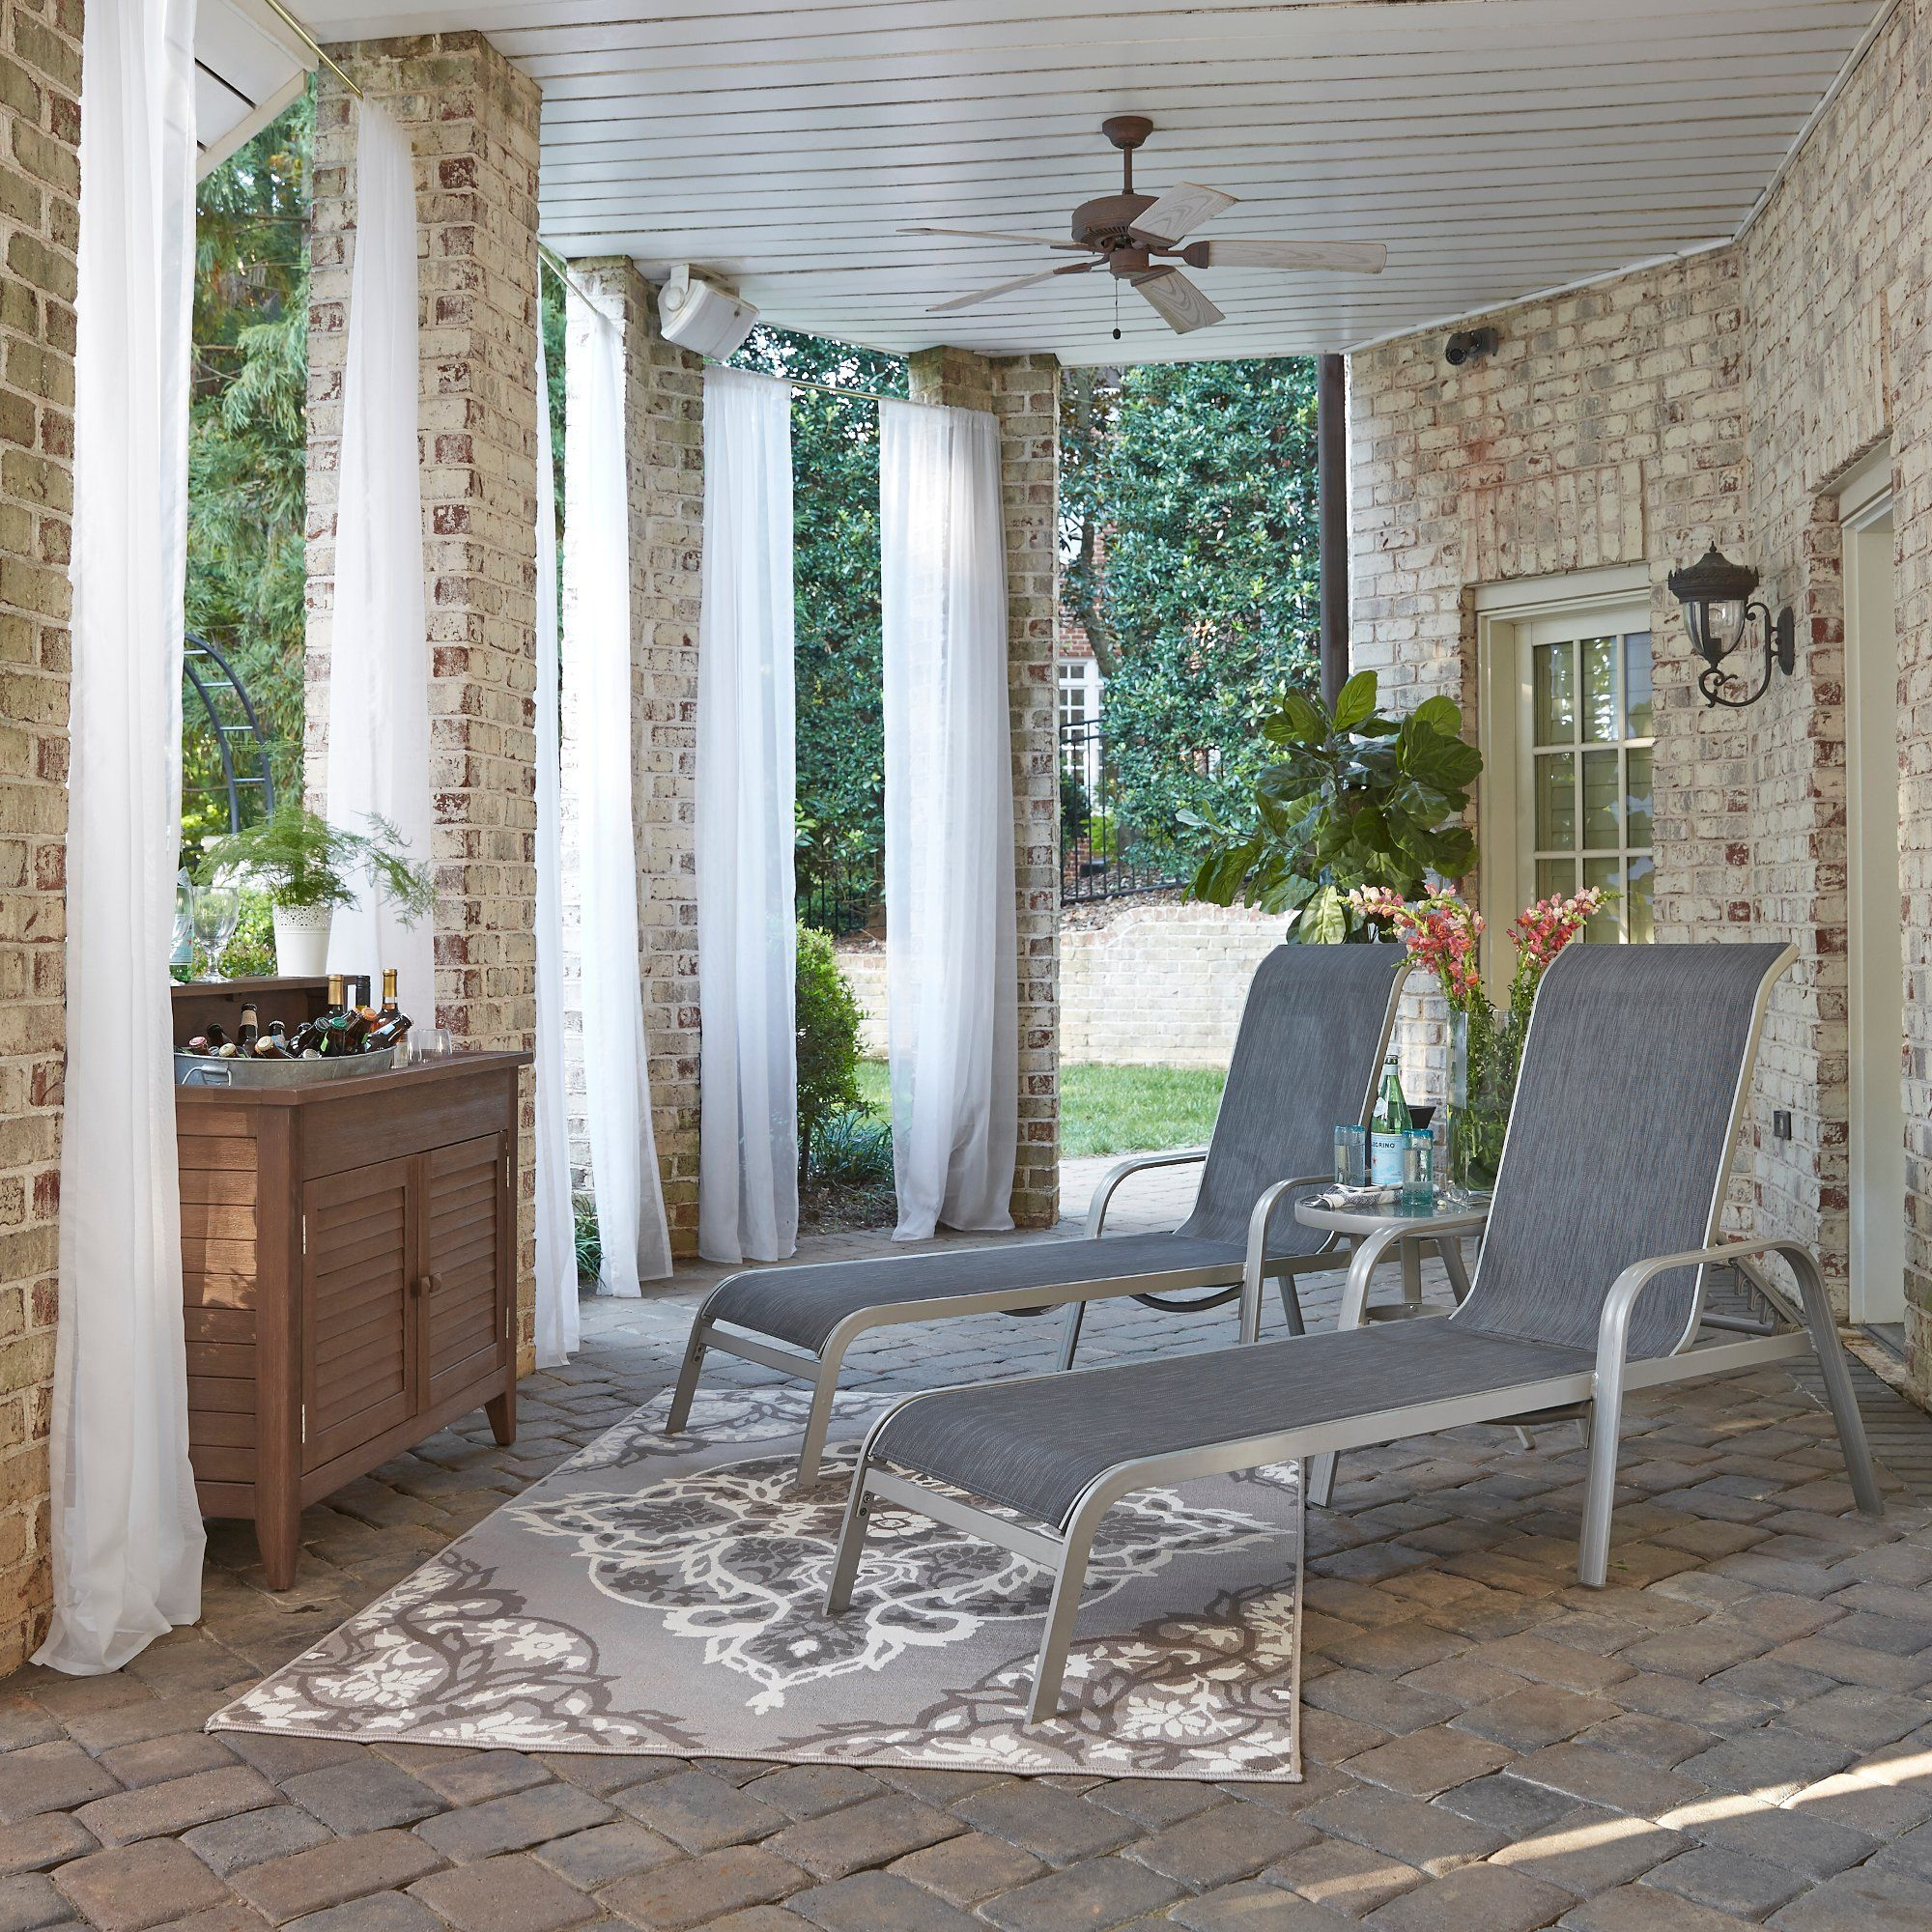 2 Sling Seat Chaise Lounge Chairs and Accent Table - South ... on Living Accents Sling Folding Chaise id=97686